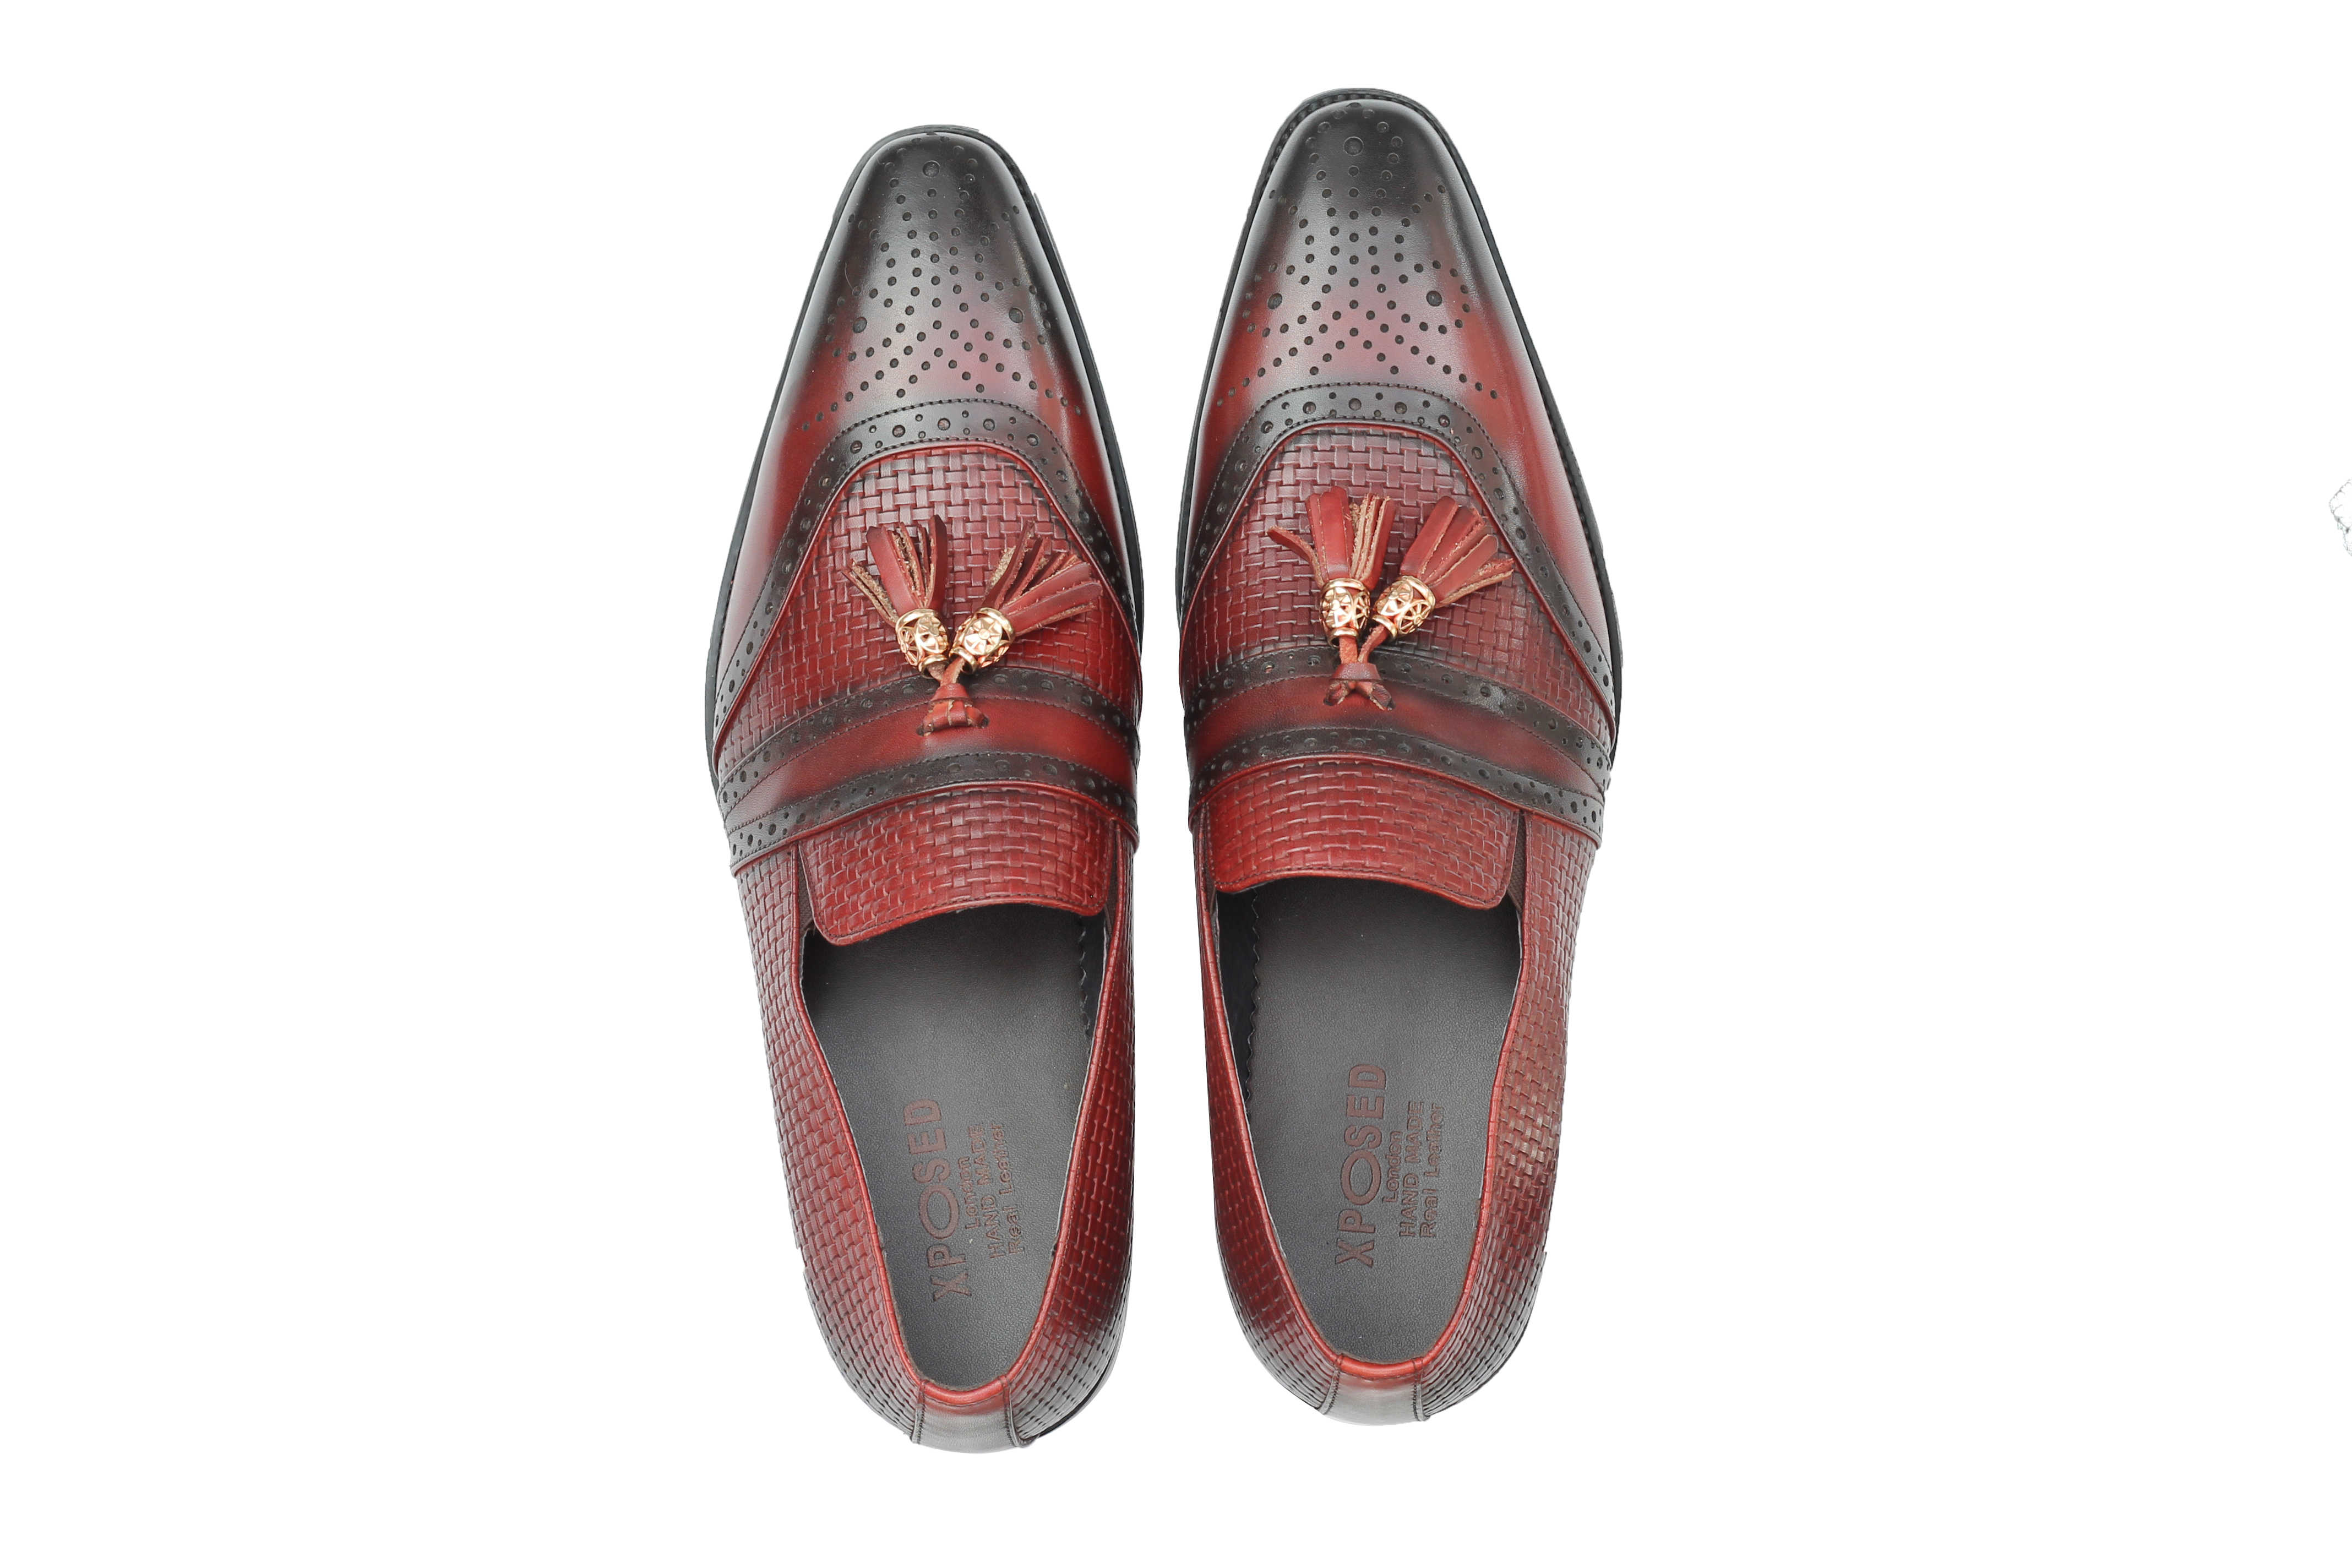 Mens-Real-Leather-Slip-on-Tassel-Loafers-High-Detailed-Smart-Dress-Party-Shoes thumbnail 14